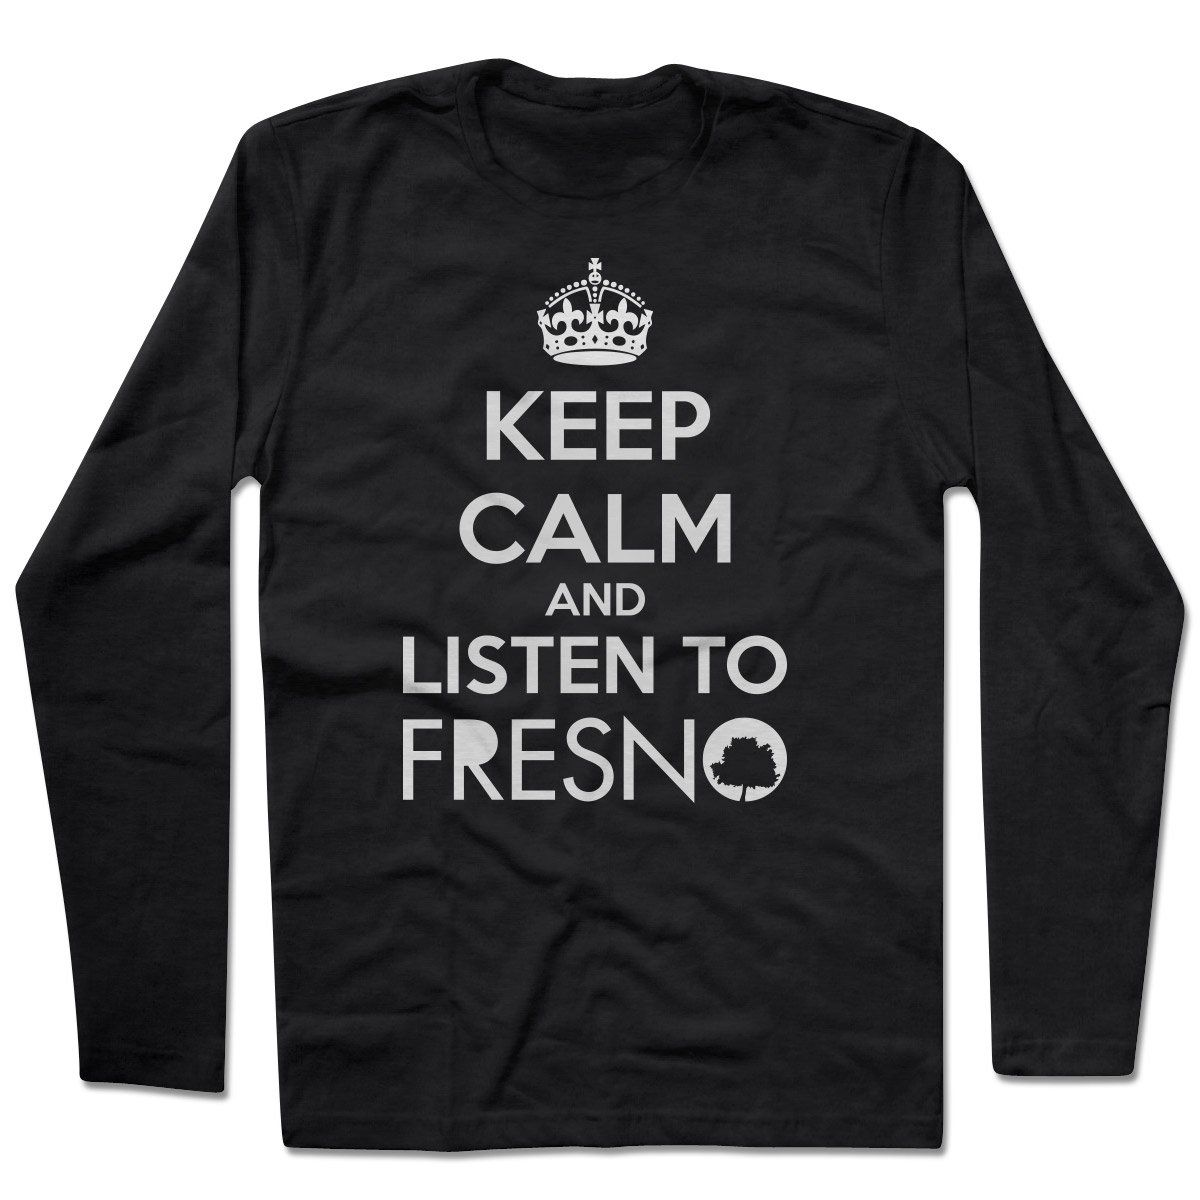 Camiseta Manga Longa Fresno - Keep Calm Black